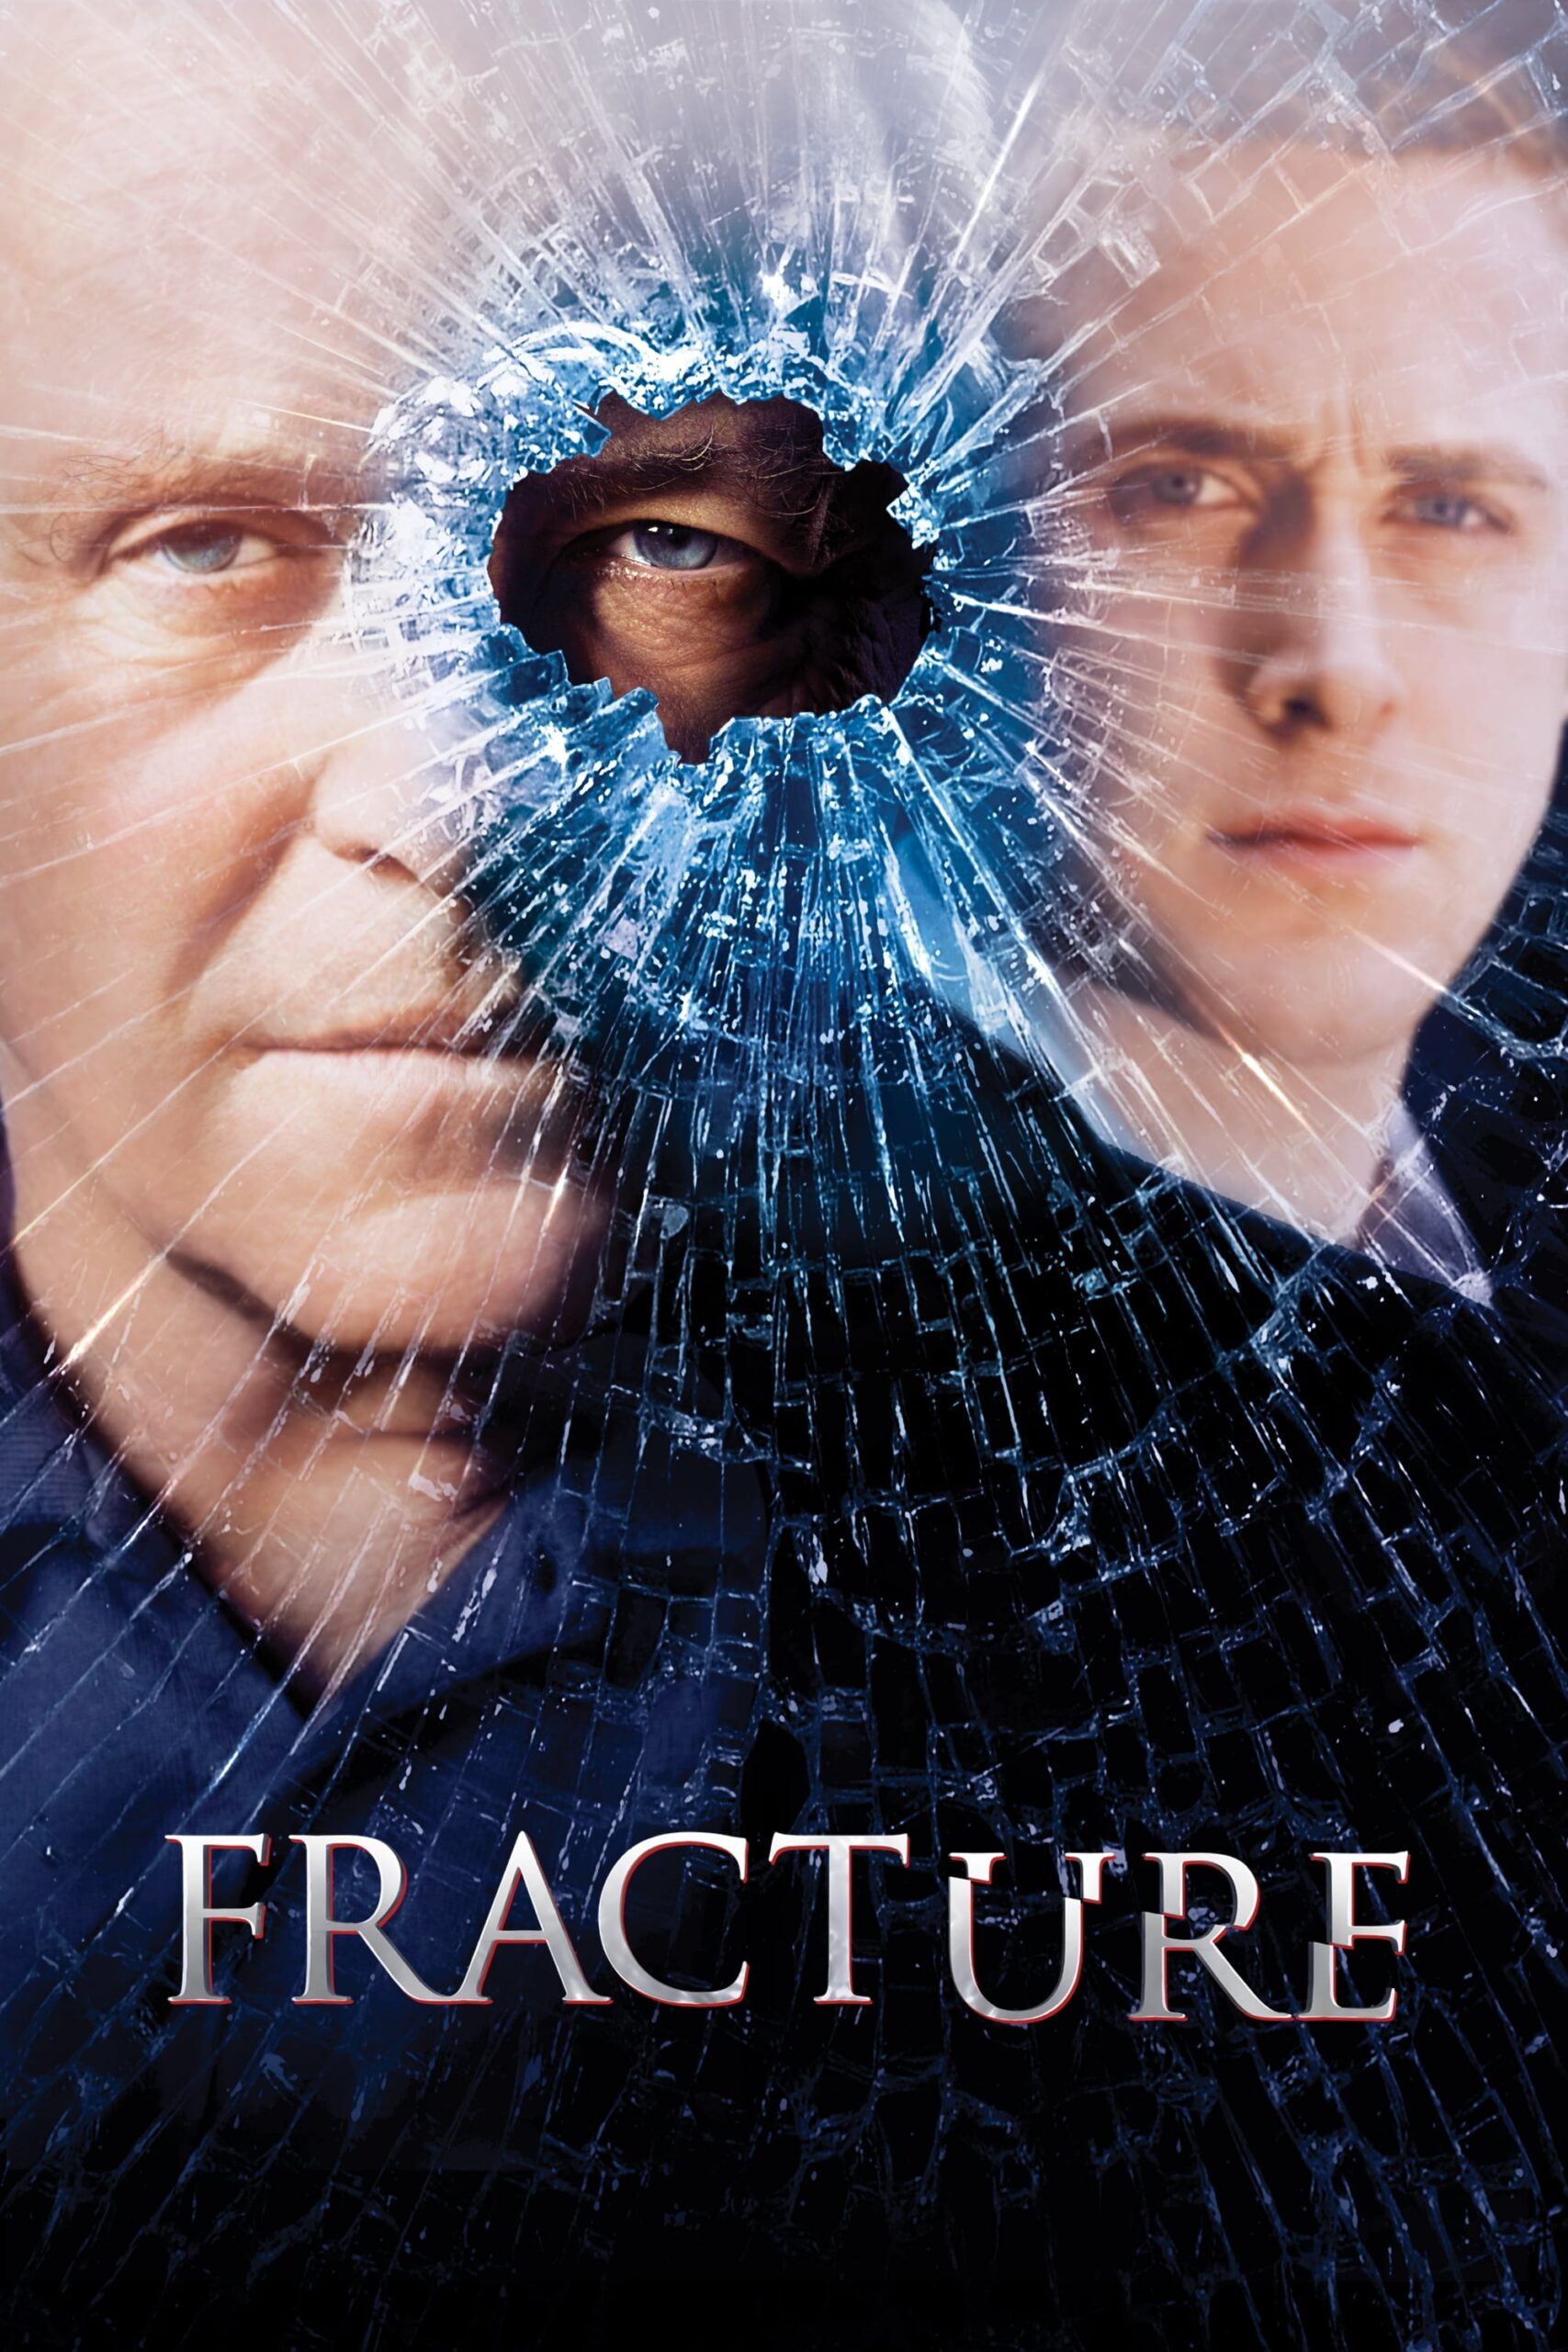 Fracture Movie Streaming Online Watch on Netflix